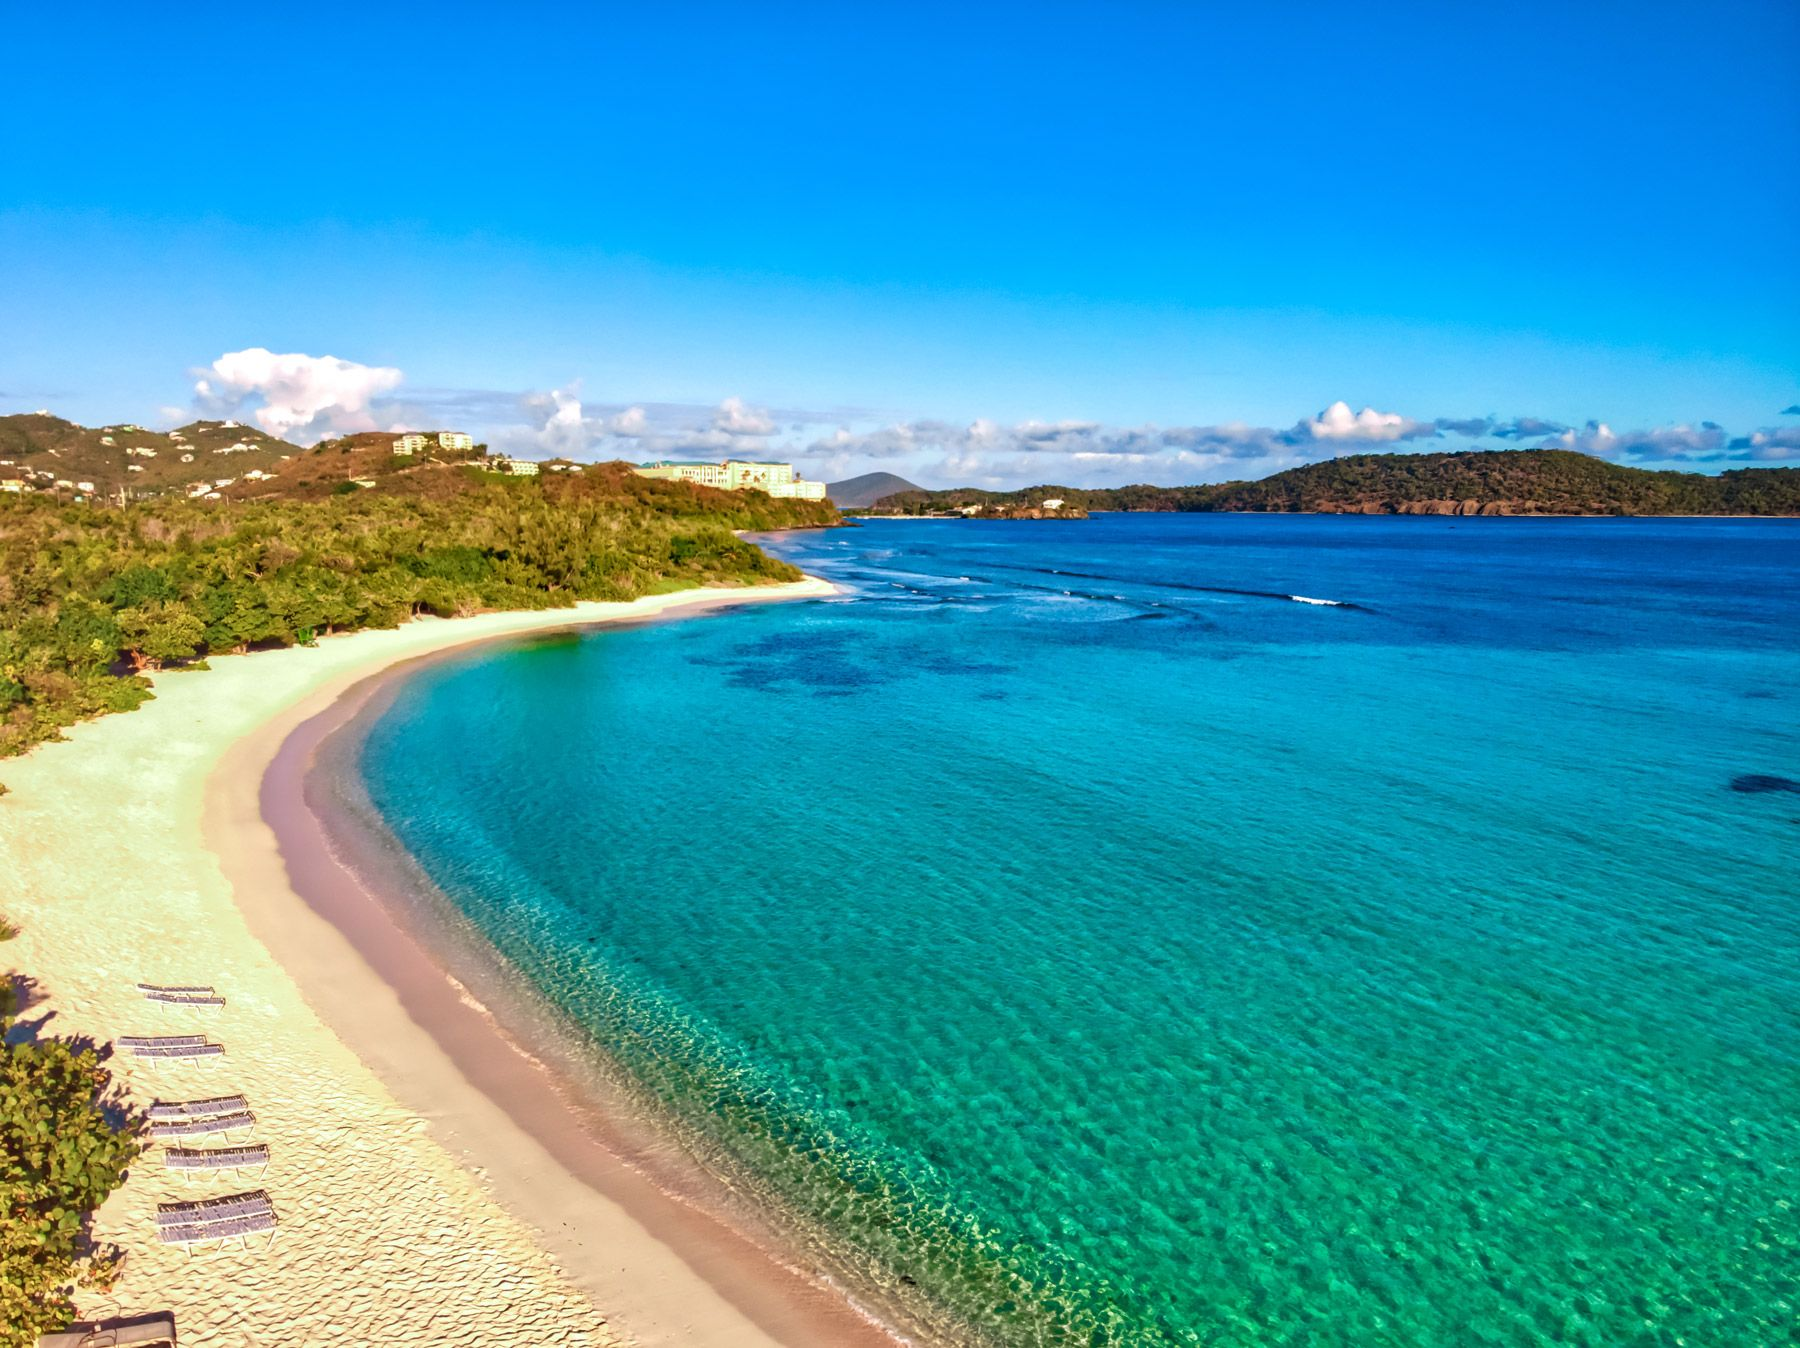 lindquist beach st thomas united states virgin islands